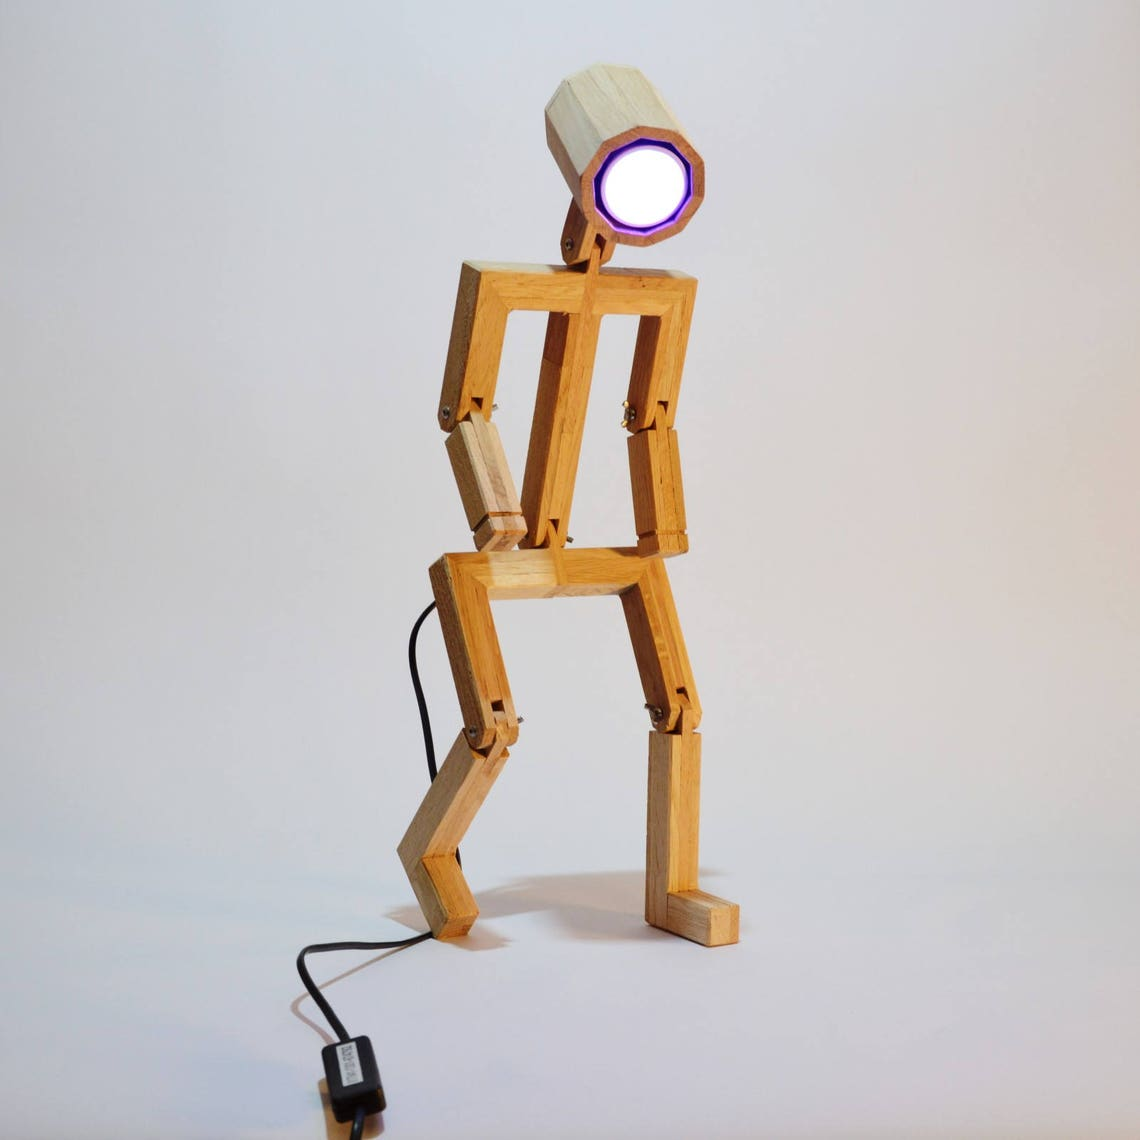 Articulated Design lamp Madame, Made from recycled wood, Anloefu - Eclairage